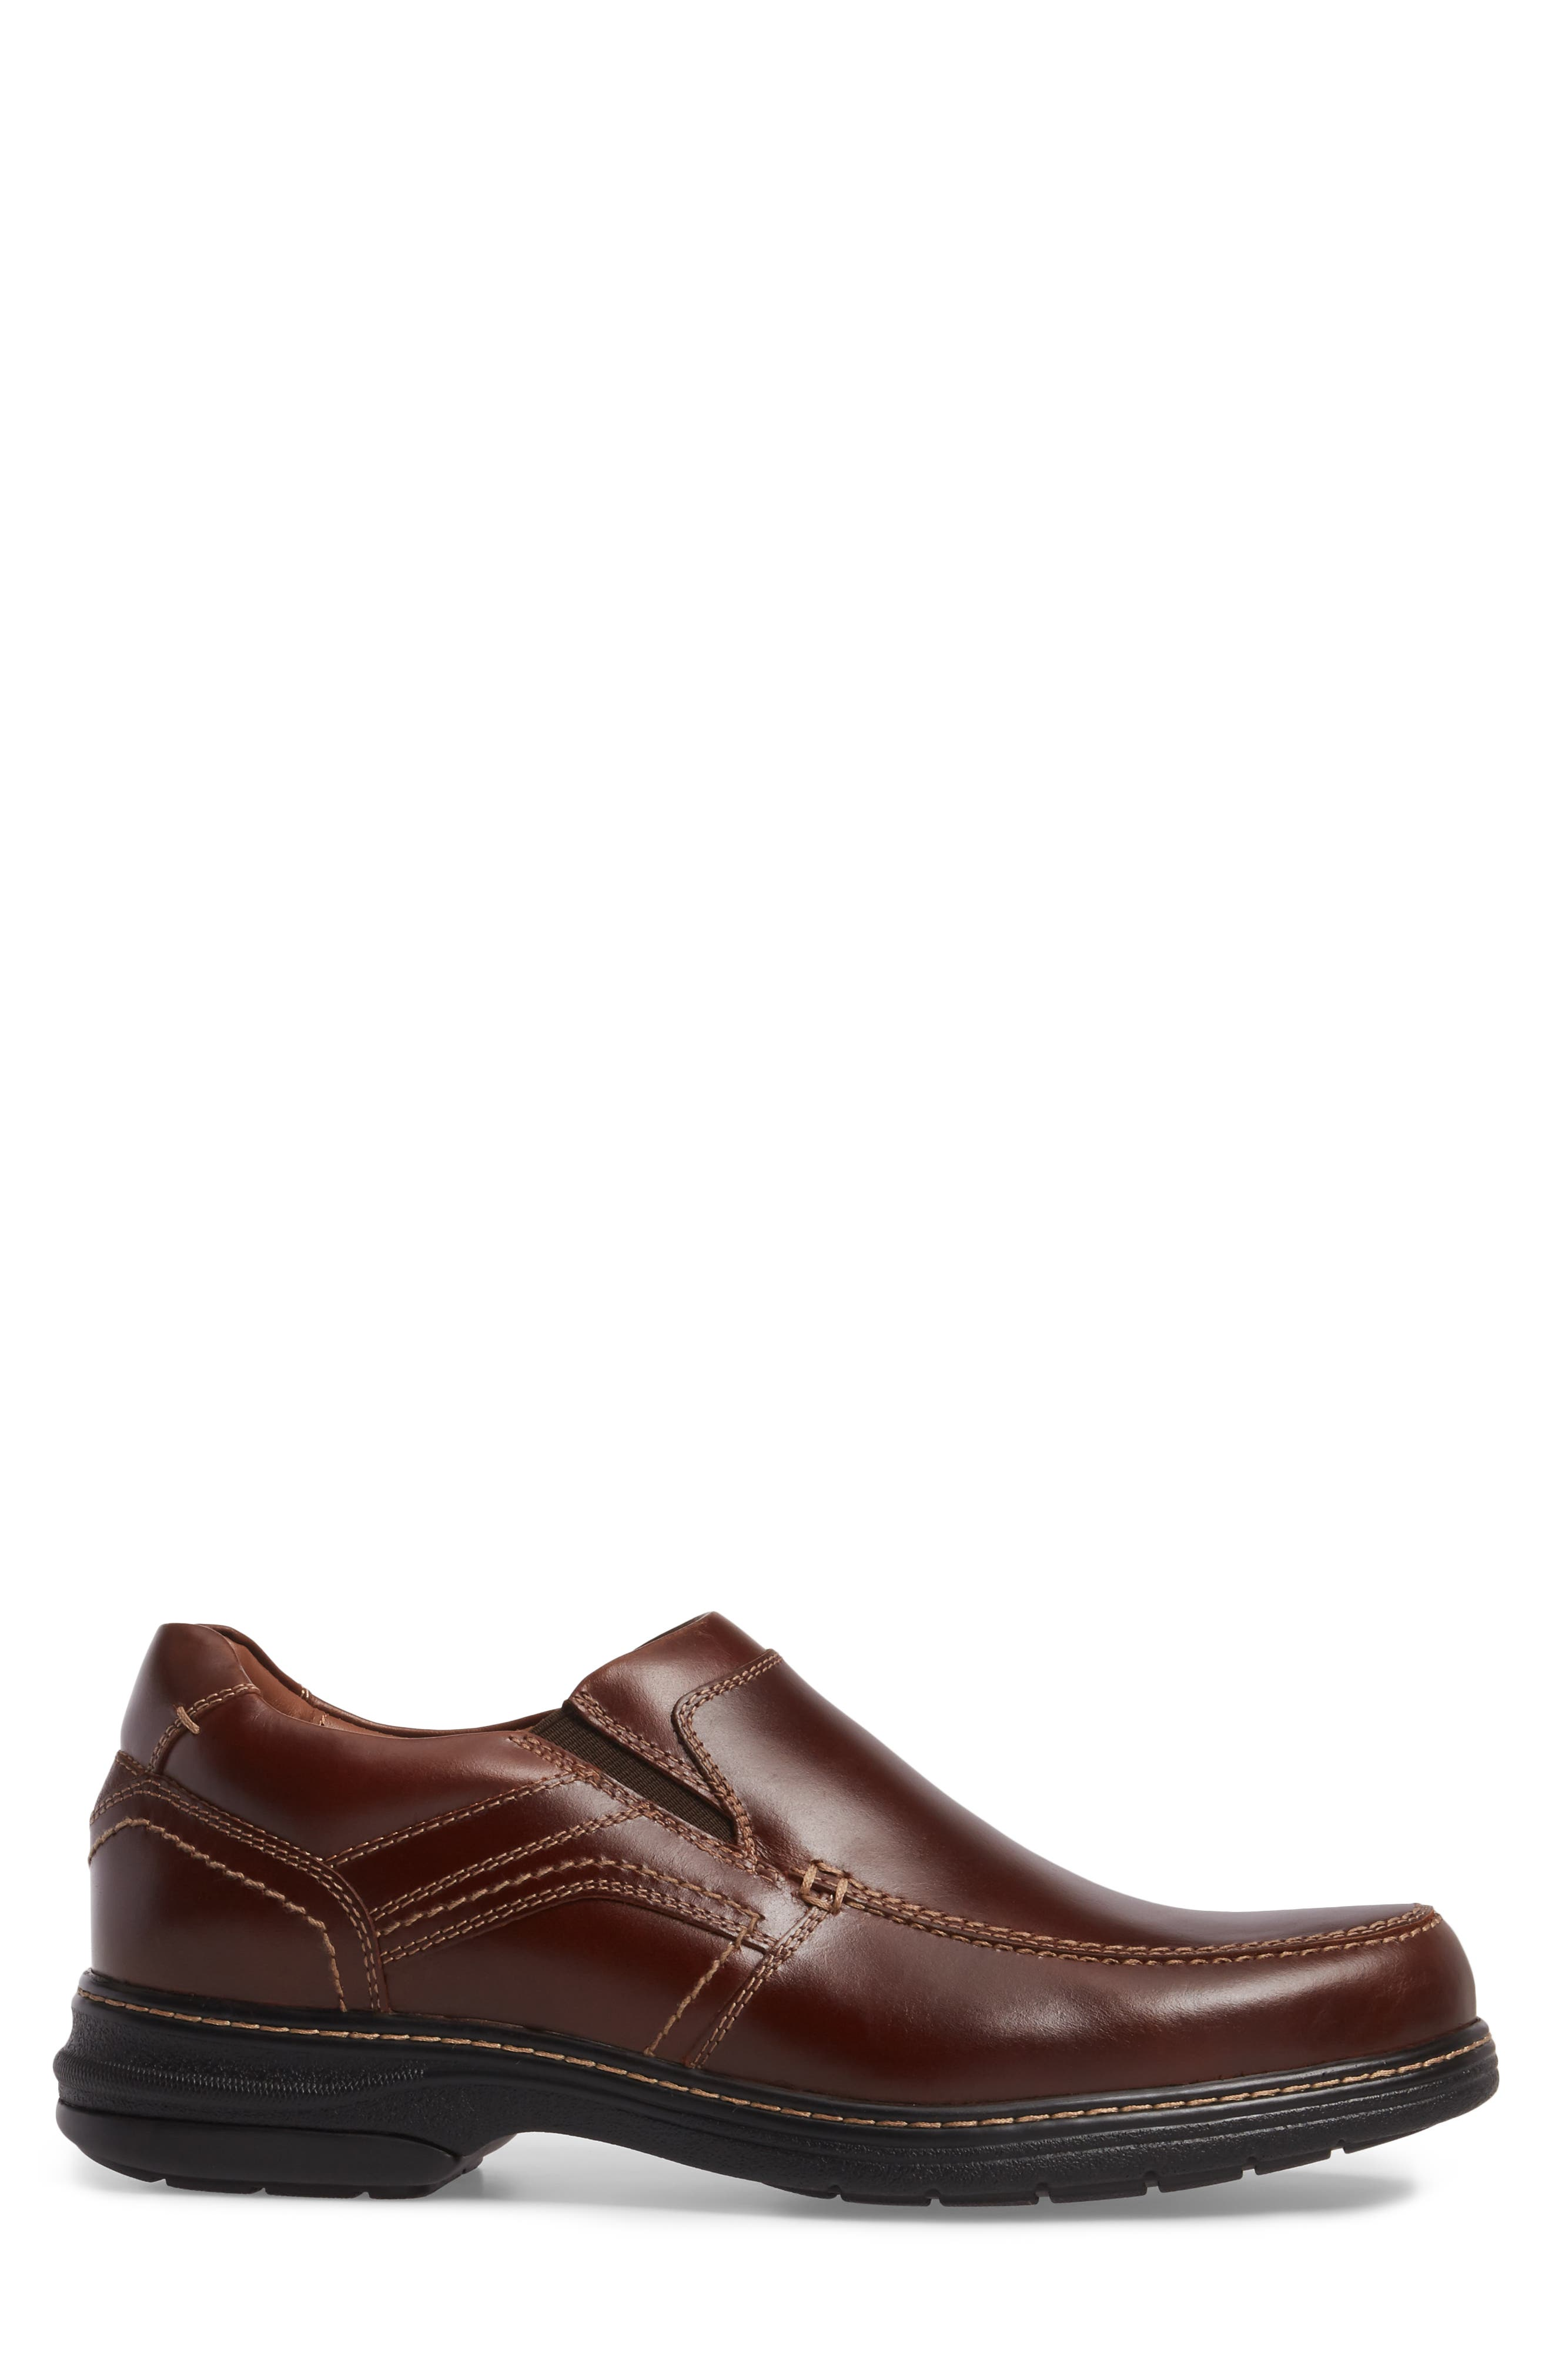 Windham Venetian Loafer,                             Alternate thumbnail 3, color,                             Mahogany